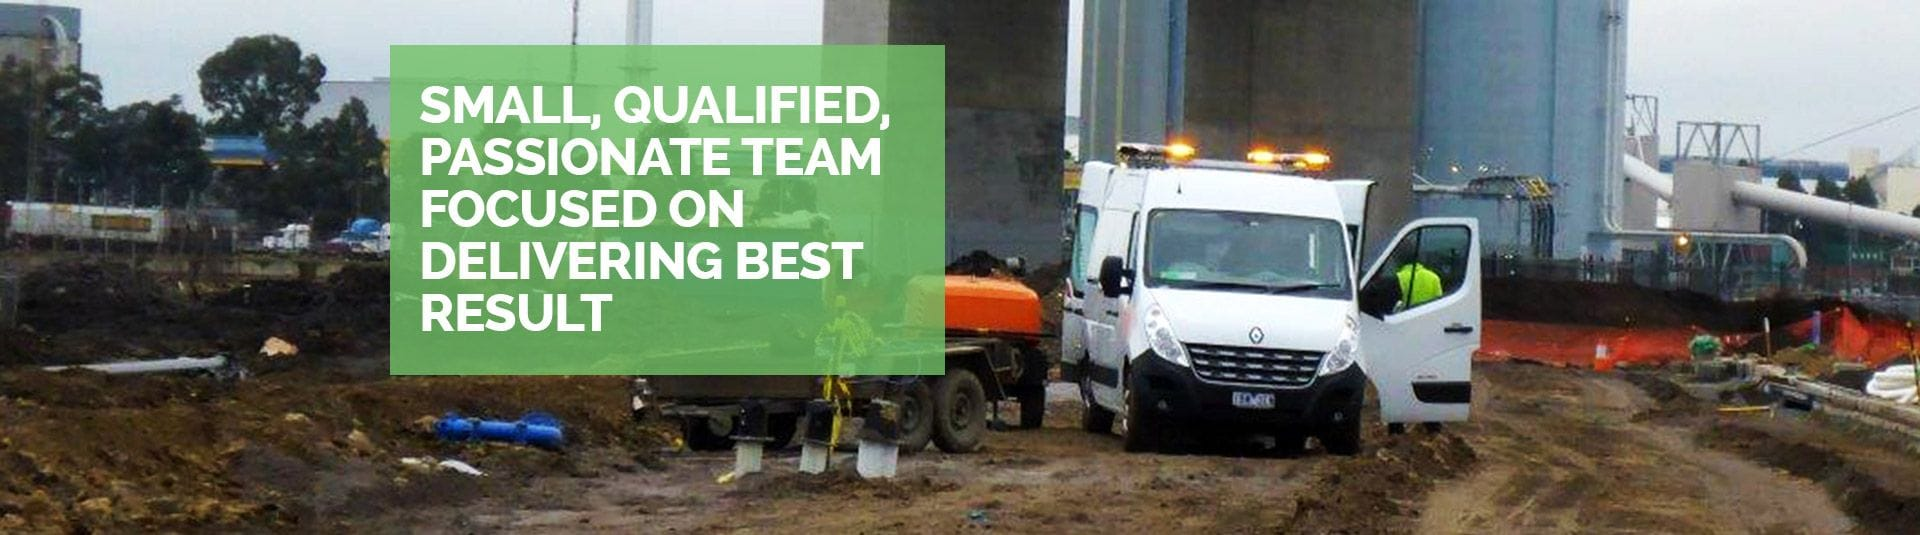 Jetcam Victoria are a small qualified passionate team focused on delivering best result